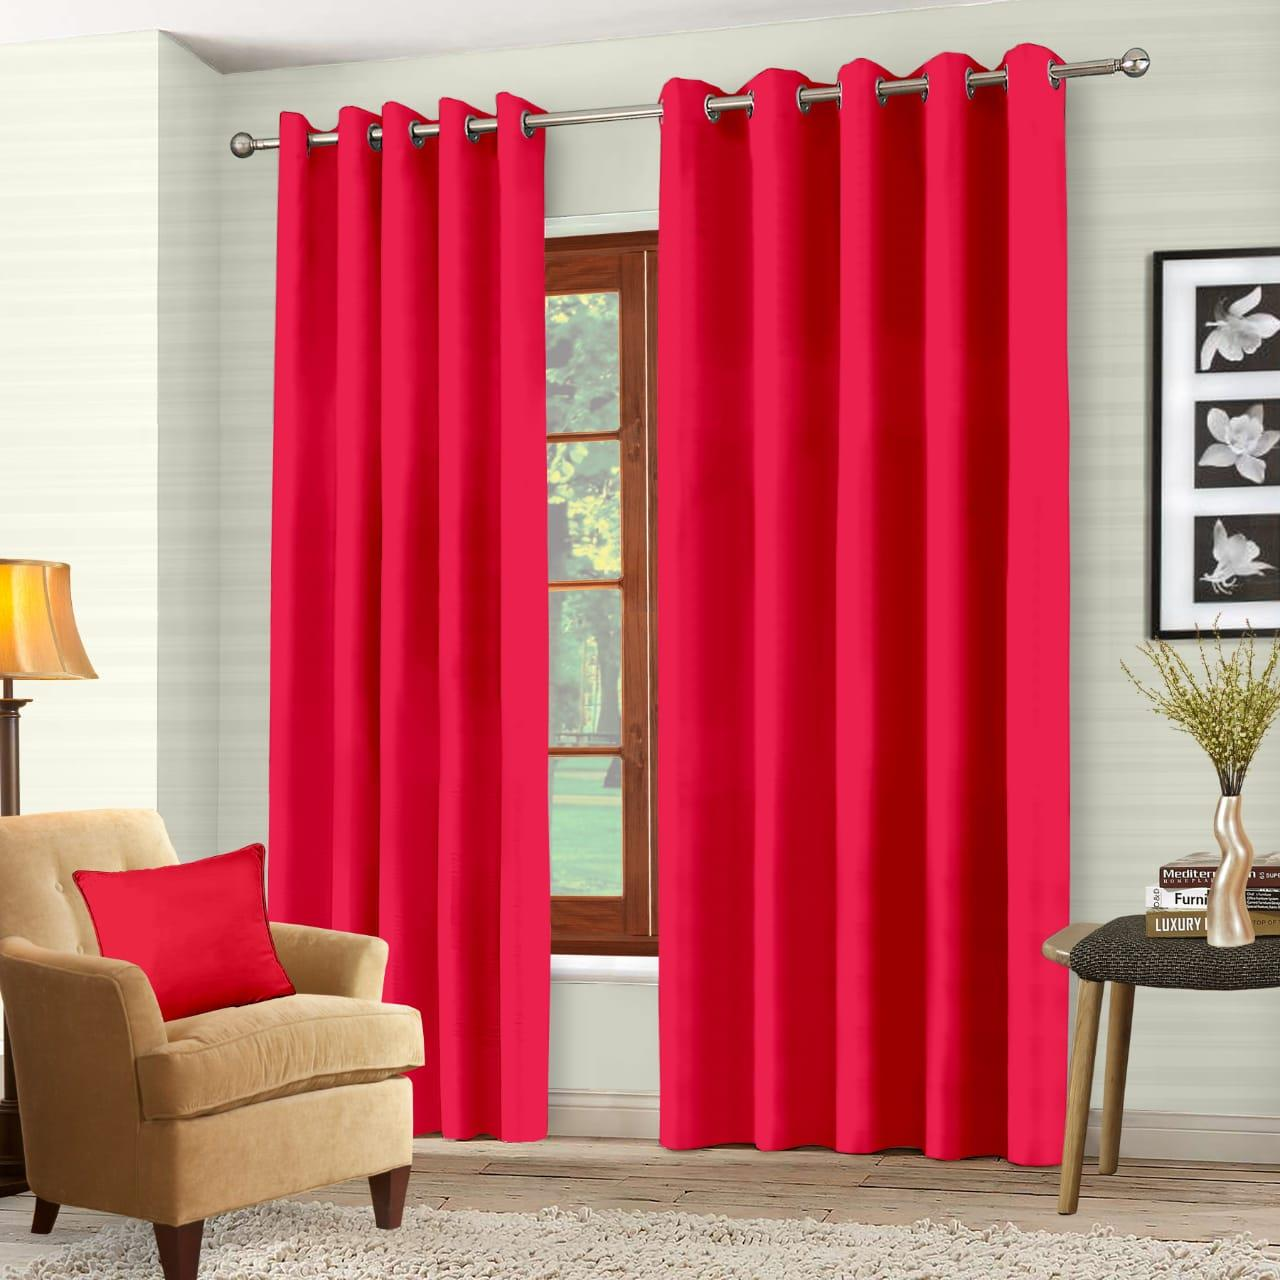 Luxury-Thermal-Blackout-Eyelet-Ring-Top-Curtains-Pair-with-tie-backs thumbnail 35